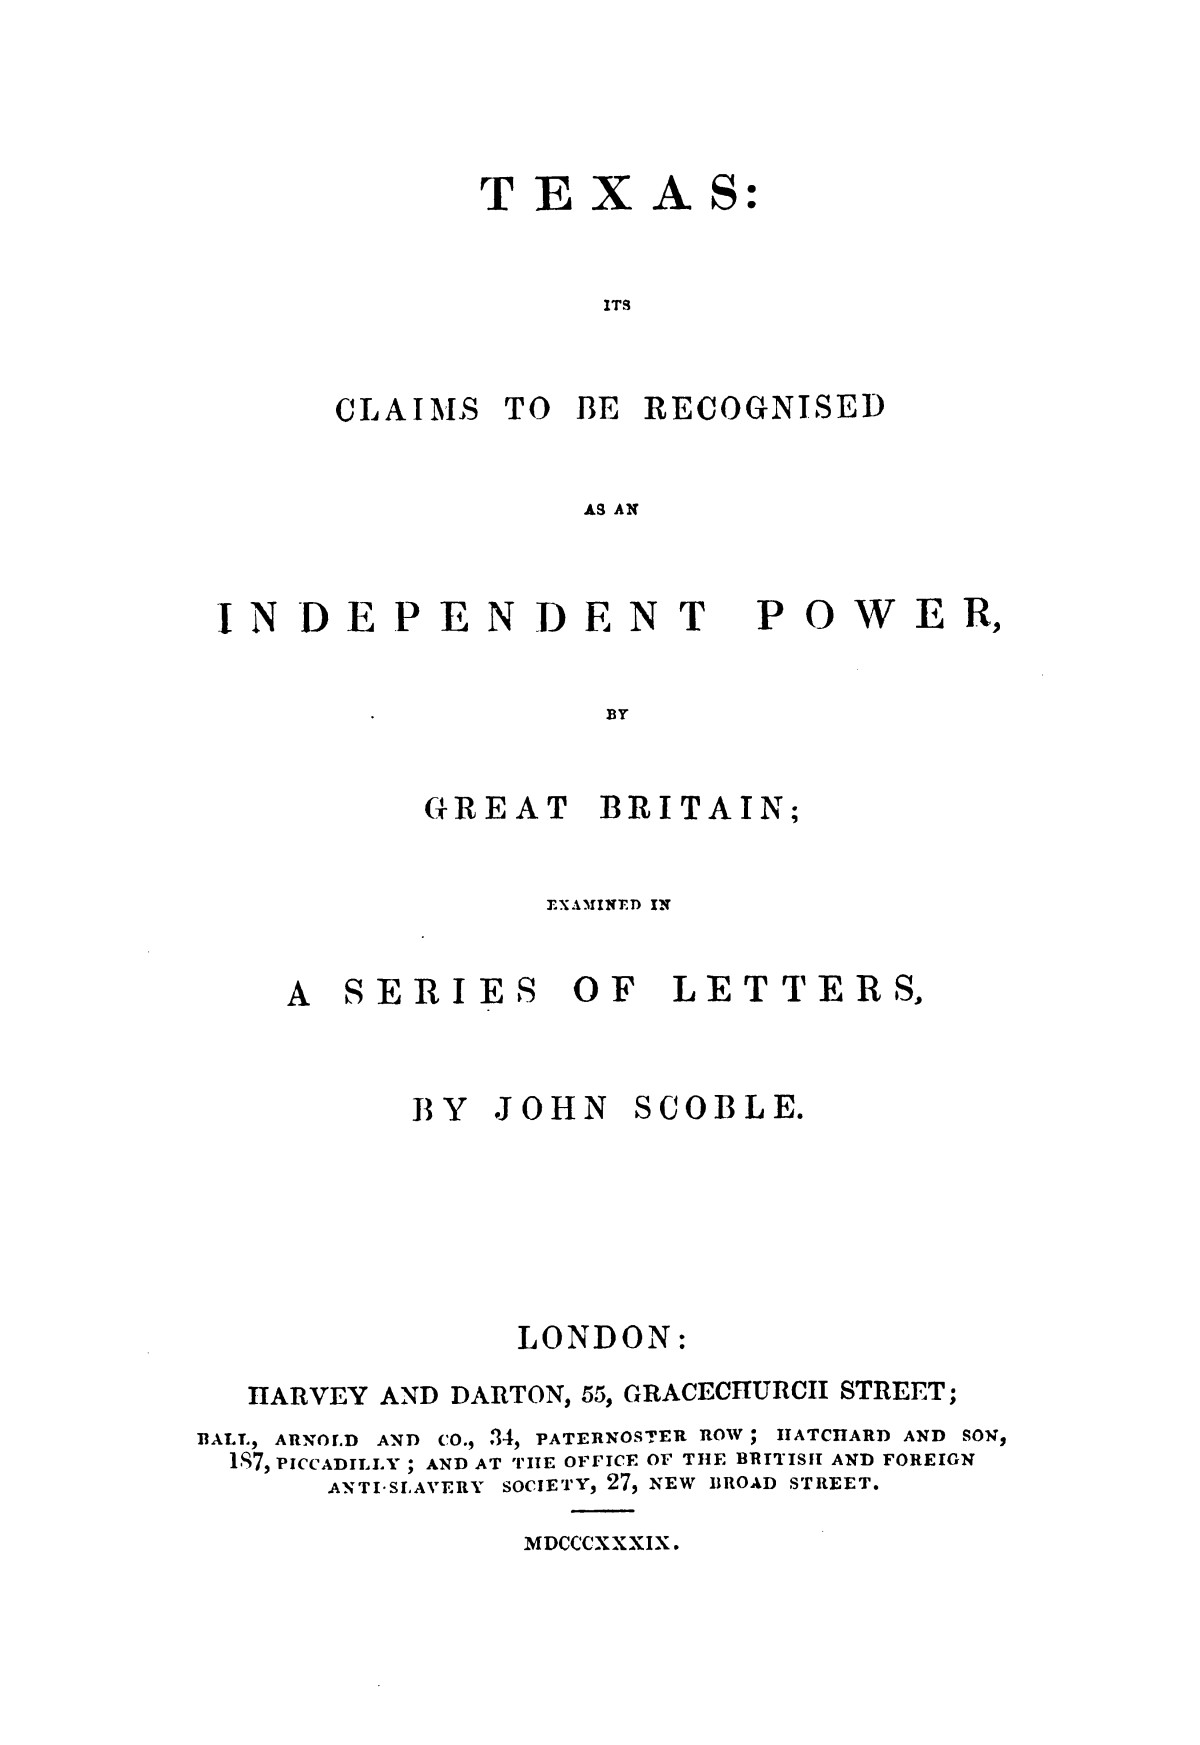 Texas, its claims to be recognised as an independent power by Great Britain : examined in a series of letters                                                                                                      [Sequence #]: 3 of 58